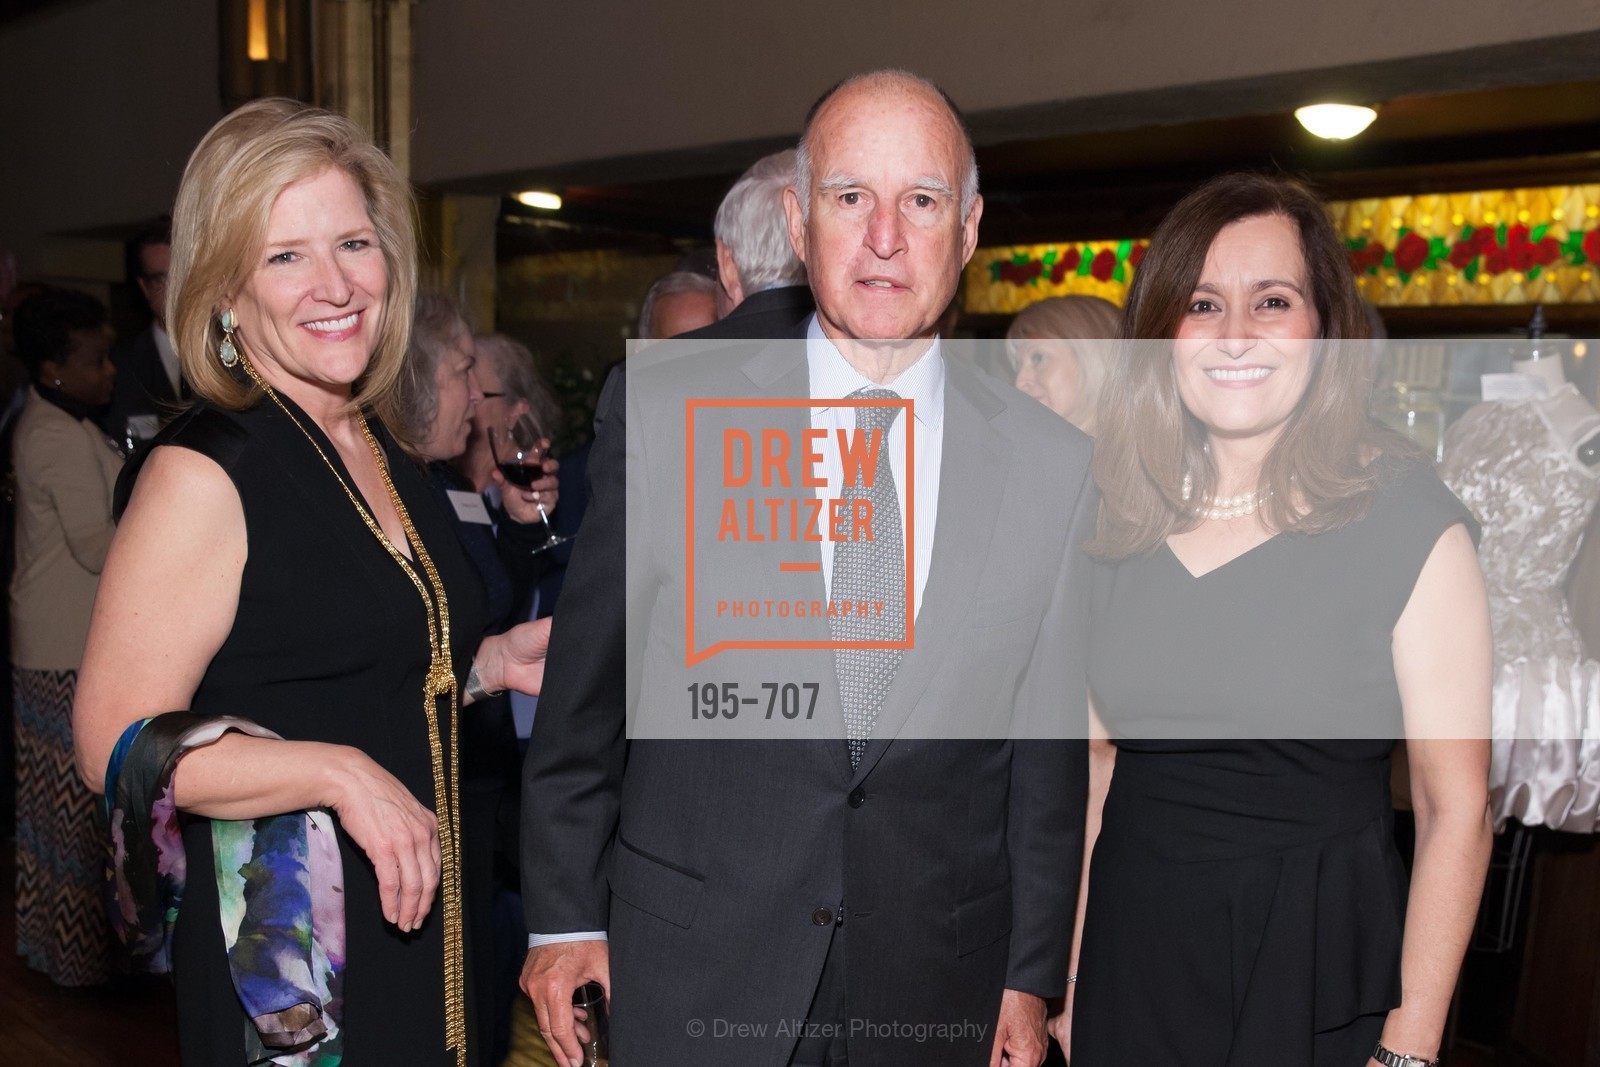 Helen Burt, Gov. Jerry Brown, Geisha Williams, OAKLAND SCHOOL FOR THE ARTS Gala 2015 with Governor Jerry Brown, US, May 7th, 2015,Drew Altizer, Drew Altizer Photography, full-service agency, private events, San Francisco photographer, photographer california